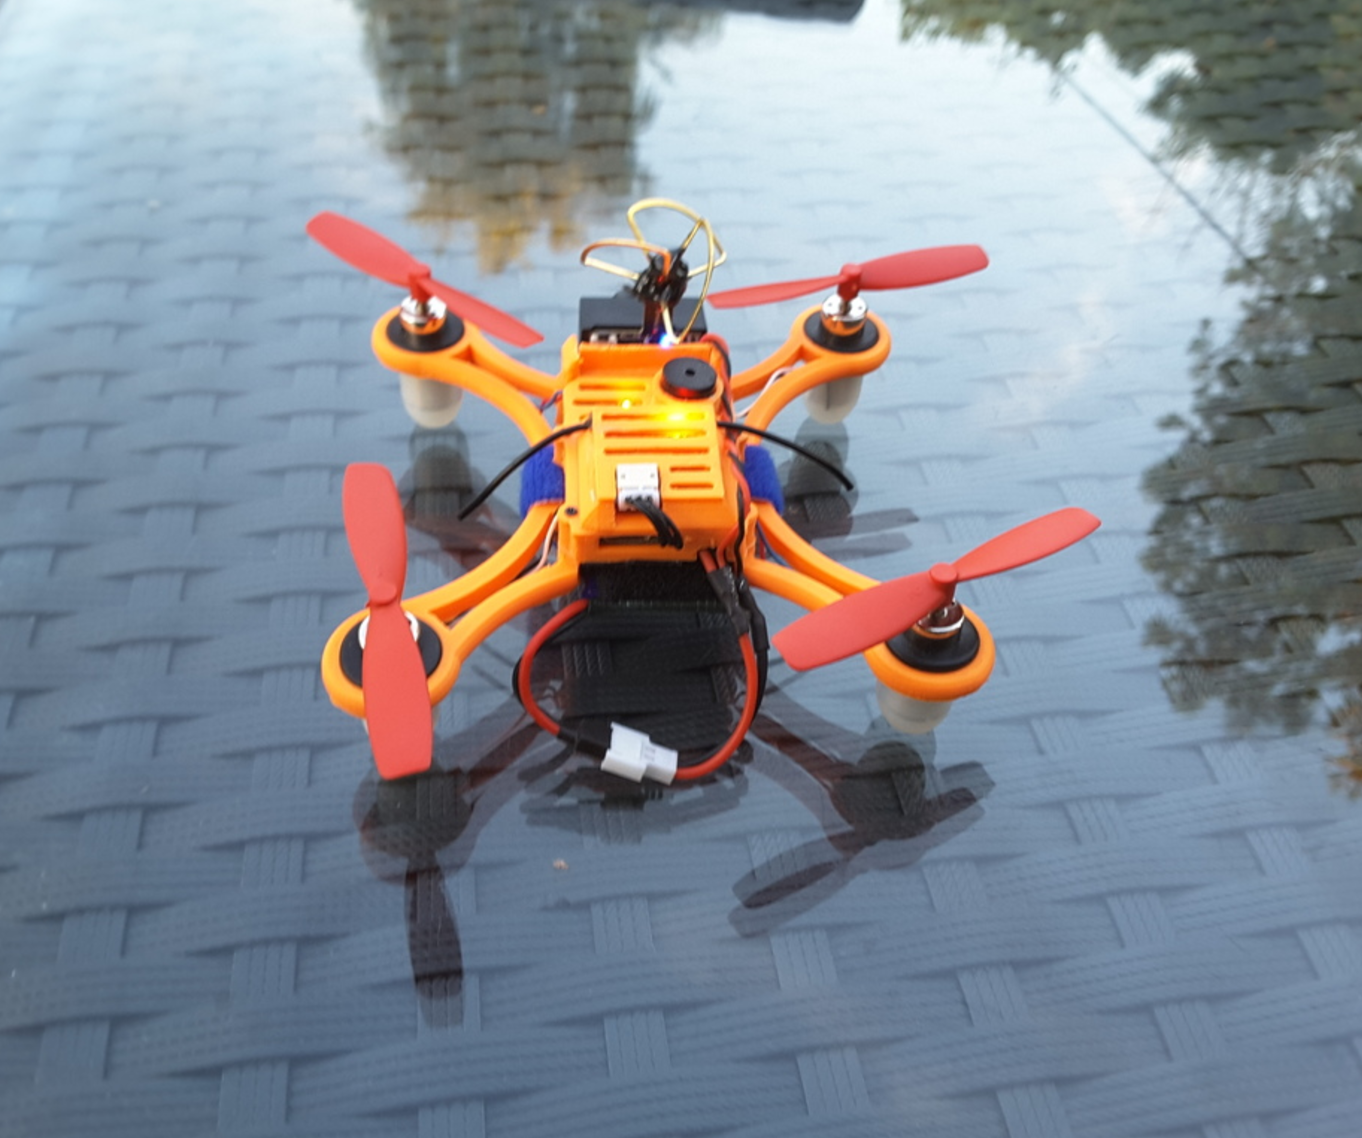 Capture d'écran 2017-02-20 à 11.10.07.png Download free STL file DC110 ABS FPV for SP F3 RACING EVO Brush Flight control • 3D printable model, Microdure